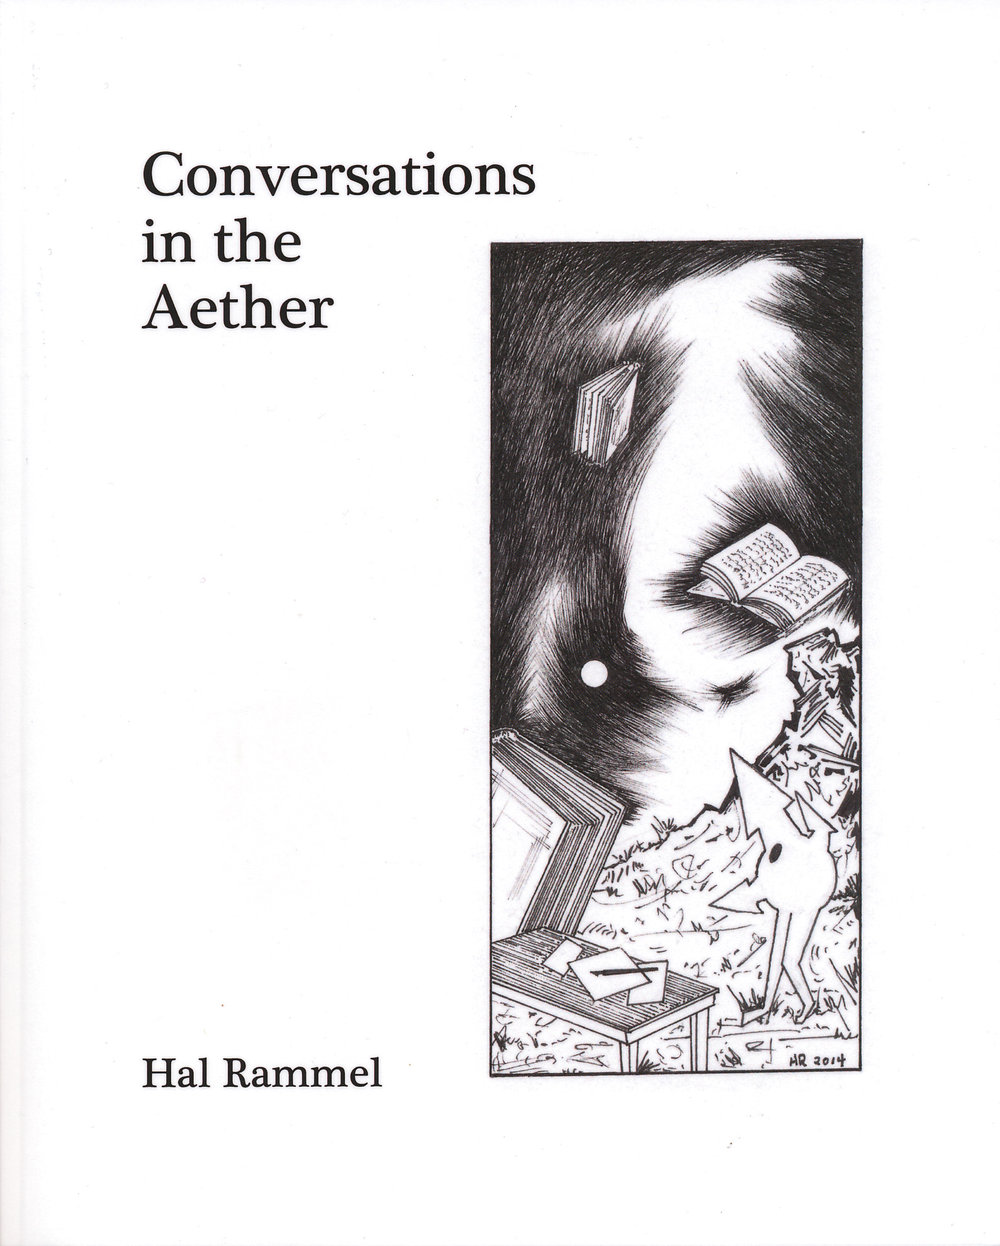 Conversations in the Aether, 2014